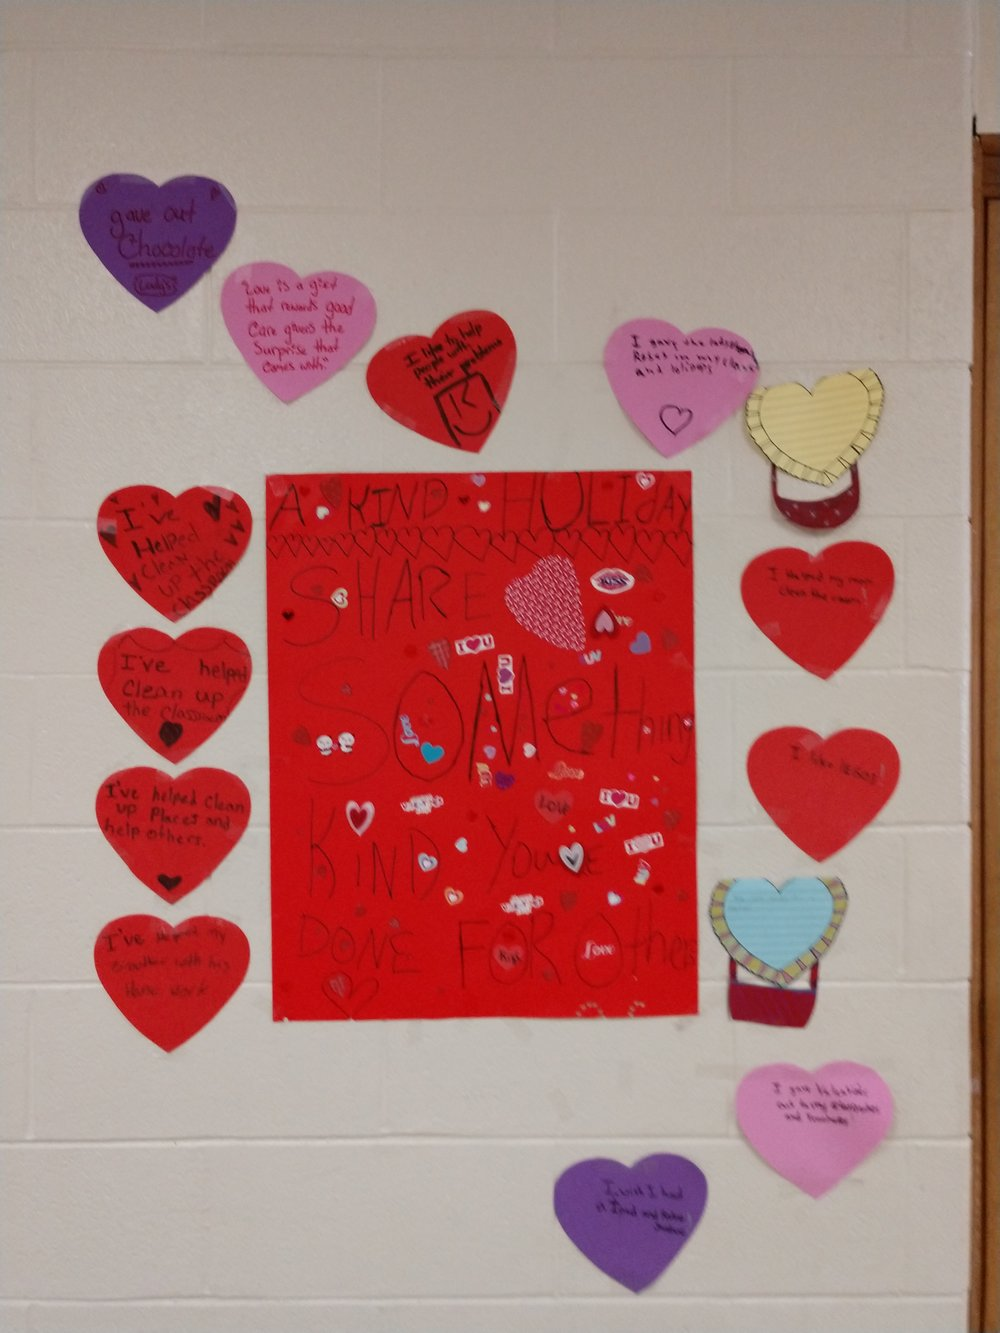 Fifth and sixth and eighth graders shared the kind things they did — giving out chocolate, cleaning up their classrooms and more — on hearts they decorated under the guidance of Ms. Debbie Lee  at M. Clifford Miller middle school in Lake Katrine, NY. They also created posters for Valentine's Day, focusing on kindness. Thank you, Ms. Lee and the kids of M. Clifford Miller middle school for reminding us to celebrate kind holidays all year long!